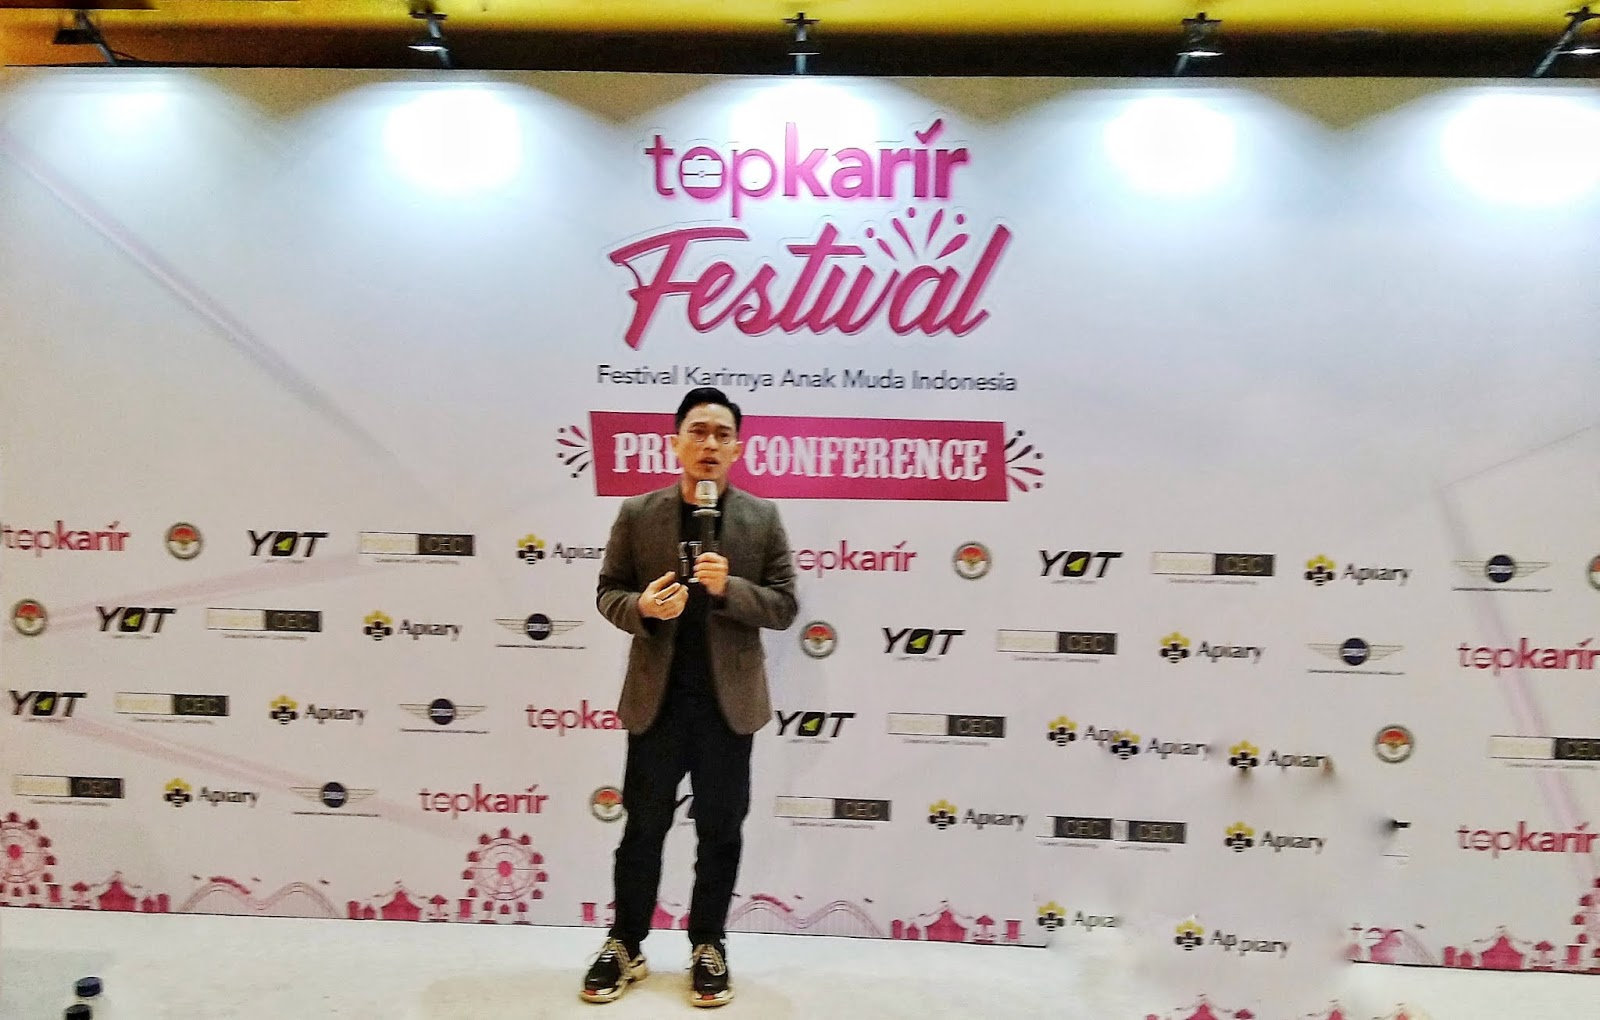 TopKarir Startup Provides Quick Career Information for Indonesia Young Generation